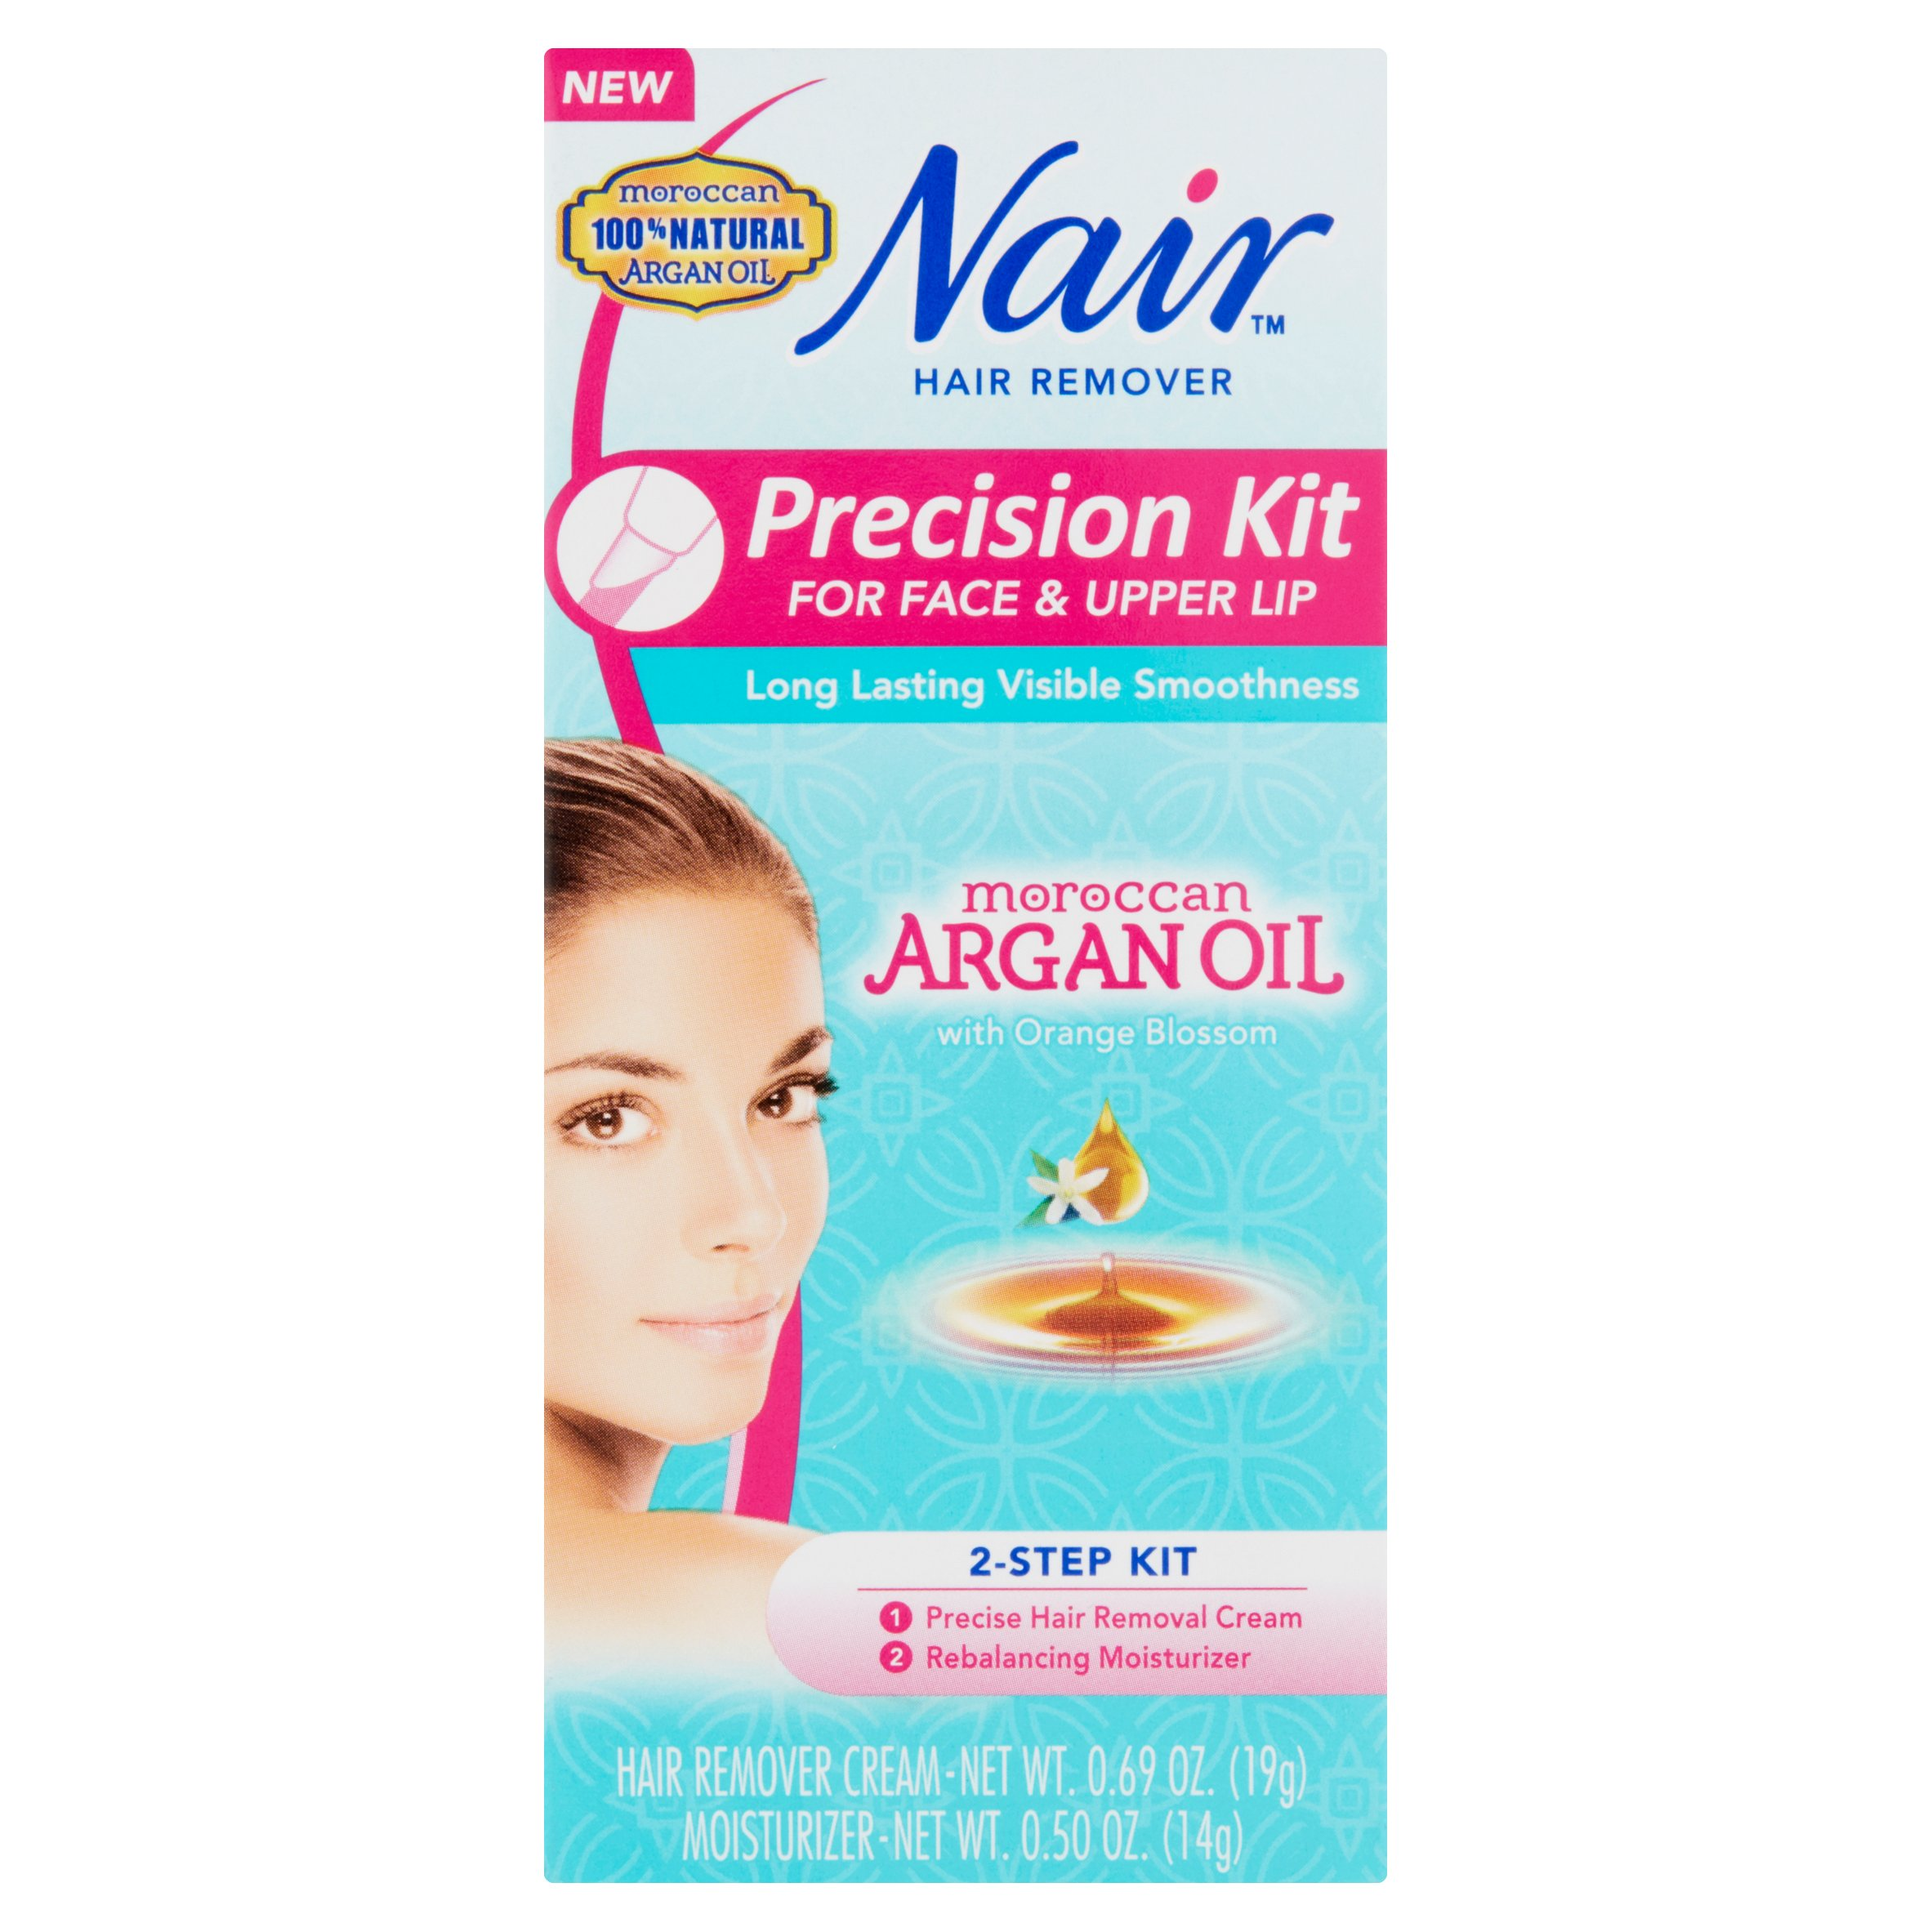 Nair Precision Kit For Face Upper Lip Hair Remover Walmart Com